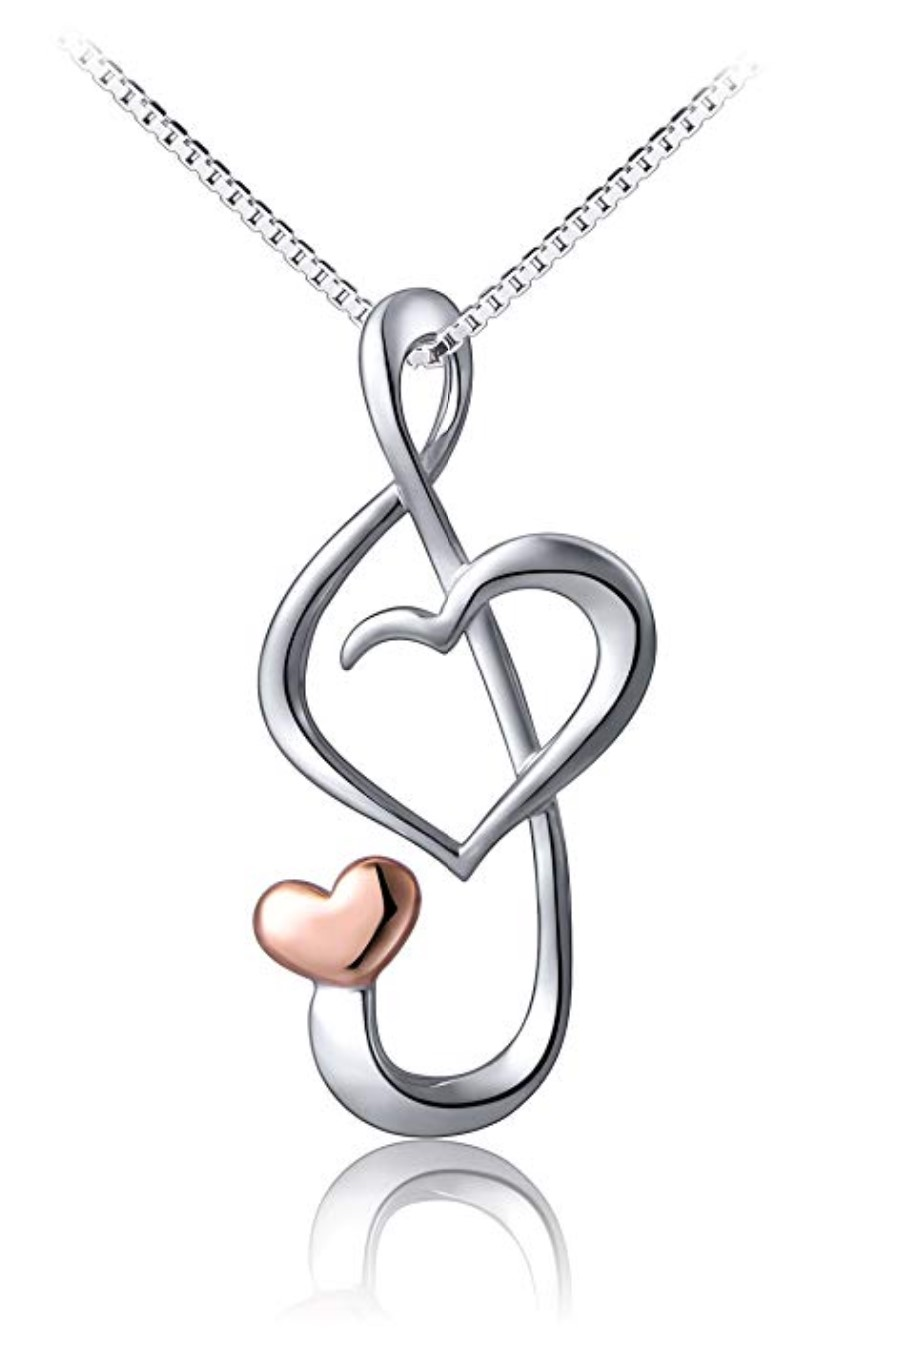 Musical Note Pendant gift for music lovers